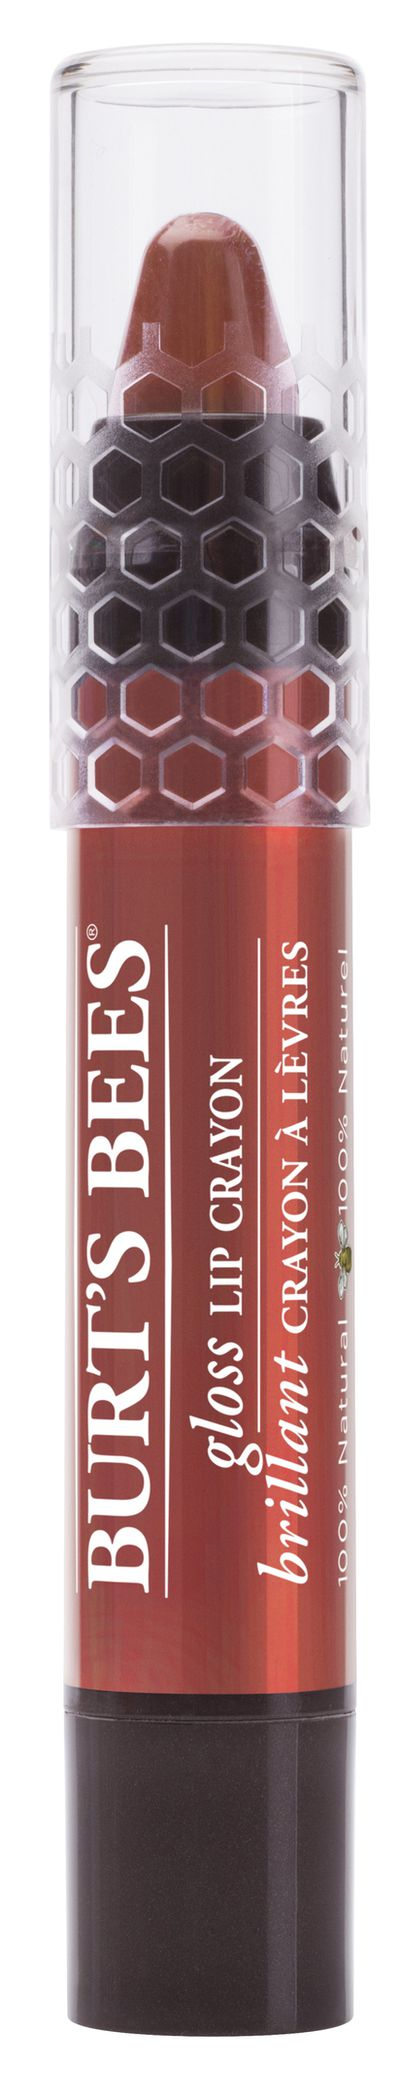 "<a href=""http://www.burtsbees.com.au/natural-products/lips-lip-colour/gloss-lip-crayon.html"" target=""_blank"">Burt&rsquo;s Bees Gloss Lip Crayon, $16.95.</a><br /> Yes, it's a lip crayon with a velvety gloss finish. But it can easily be used as blush too! Seriously. Try it."